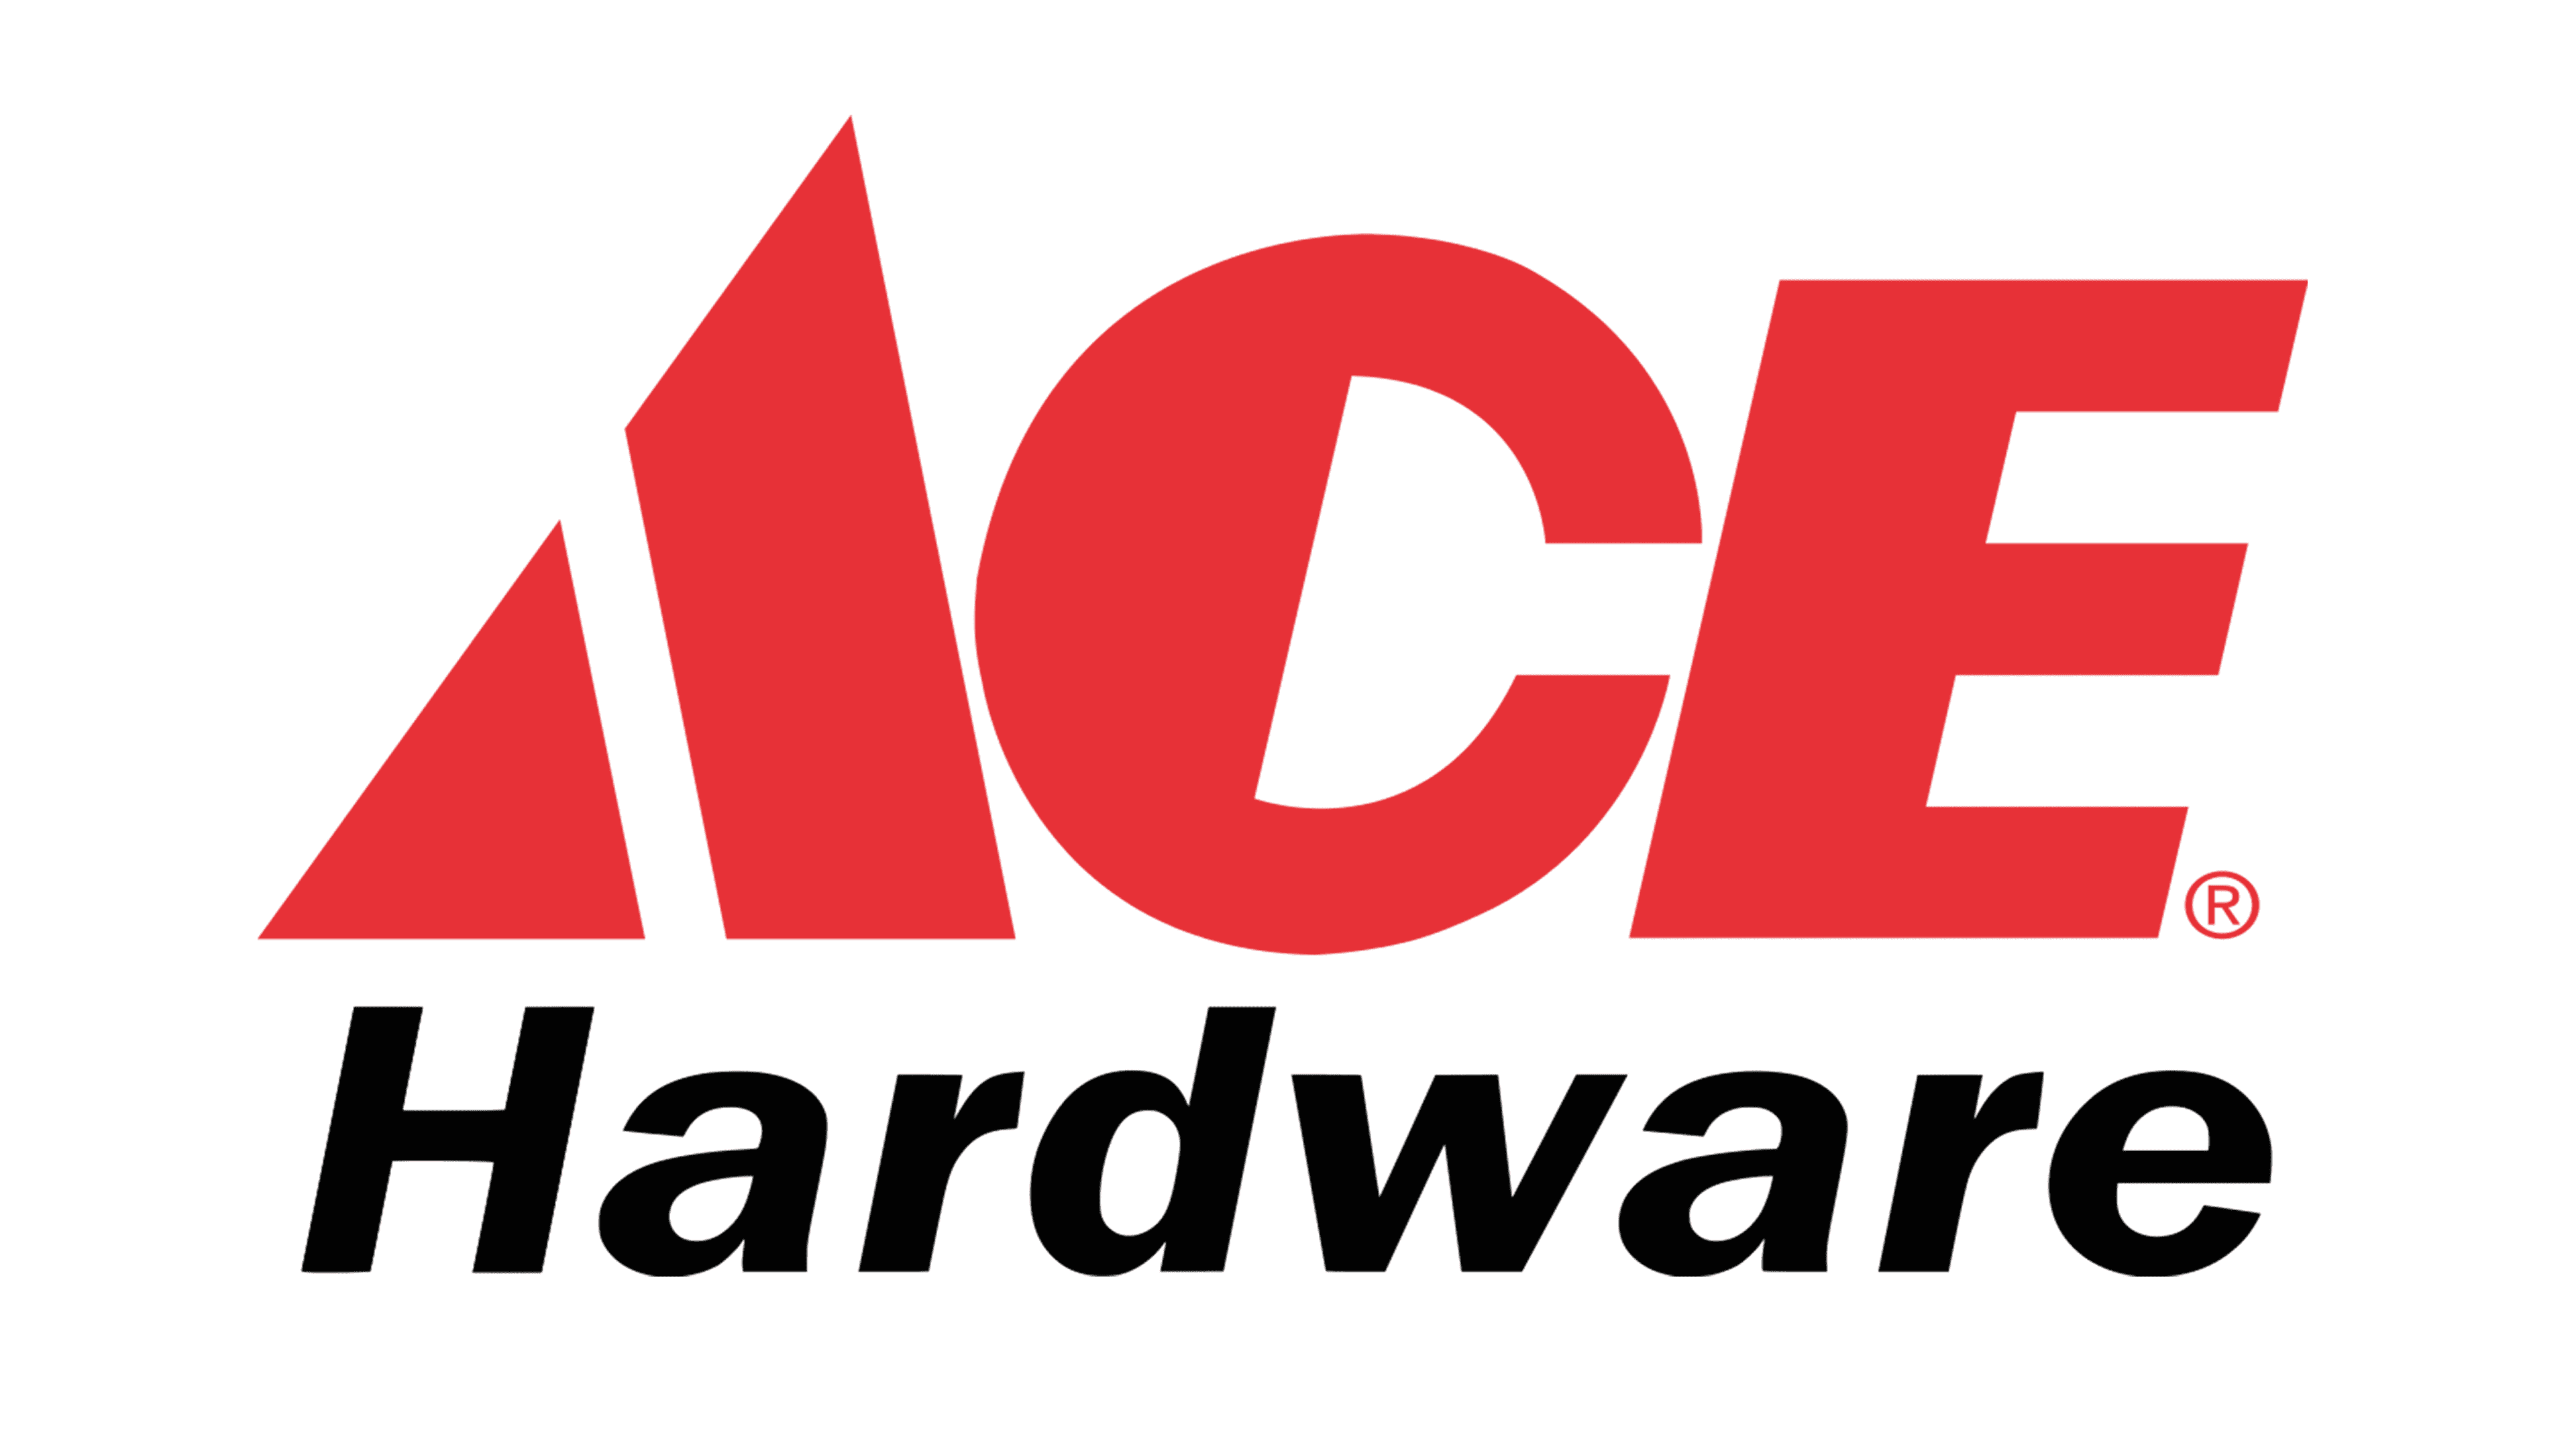 Ace Hardware 25% off one item up to $12.50 discounted B&M